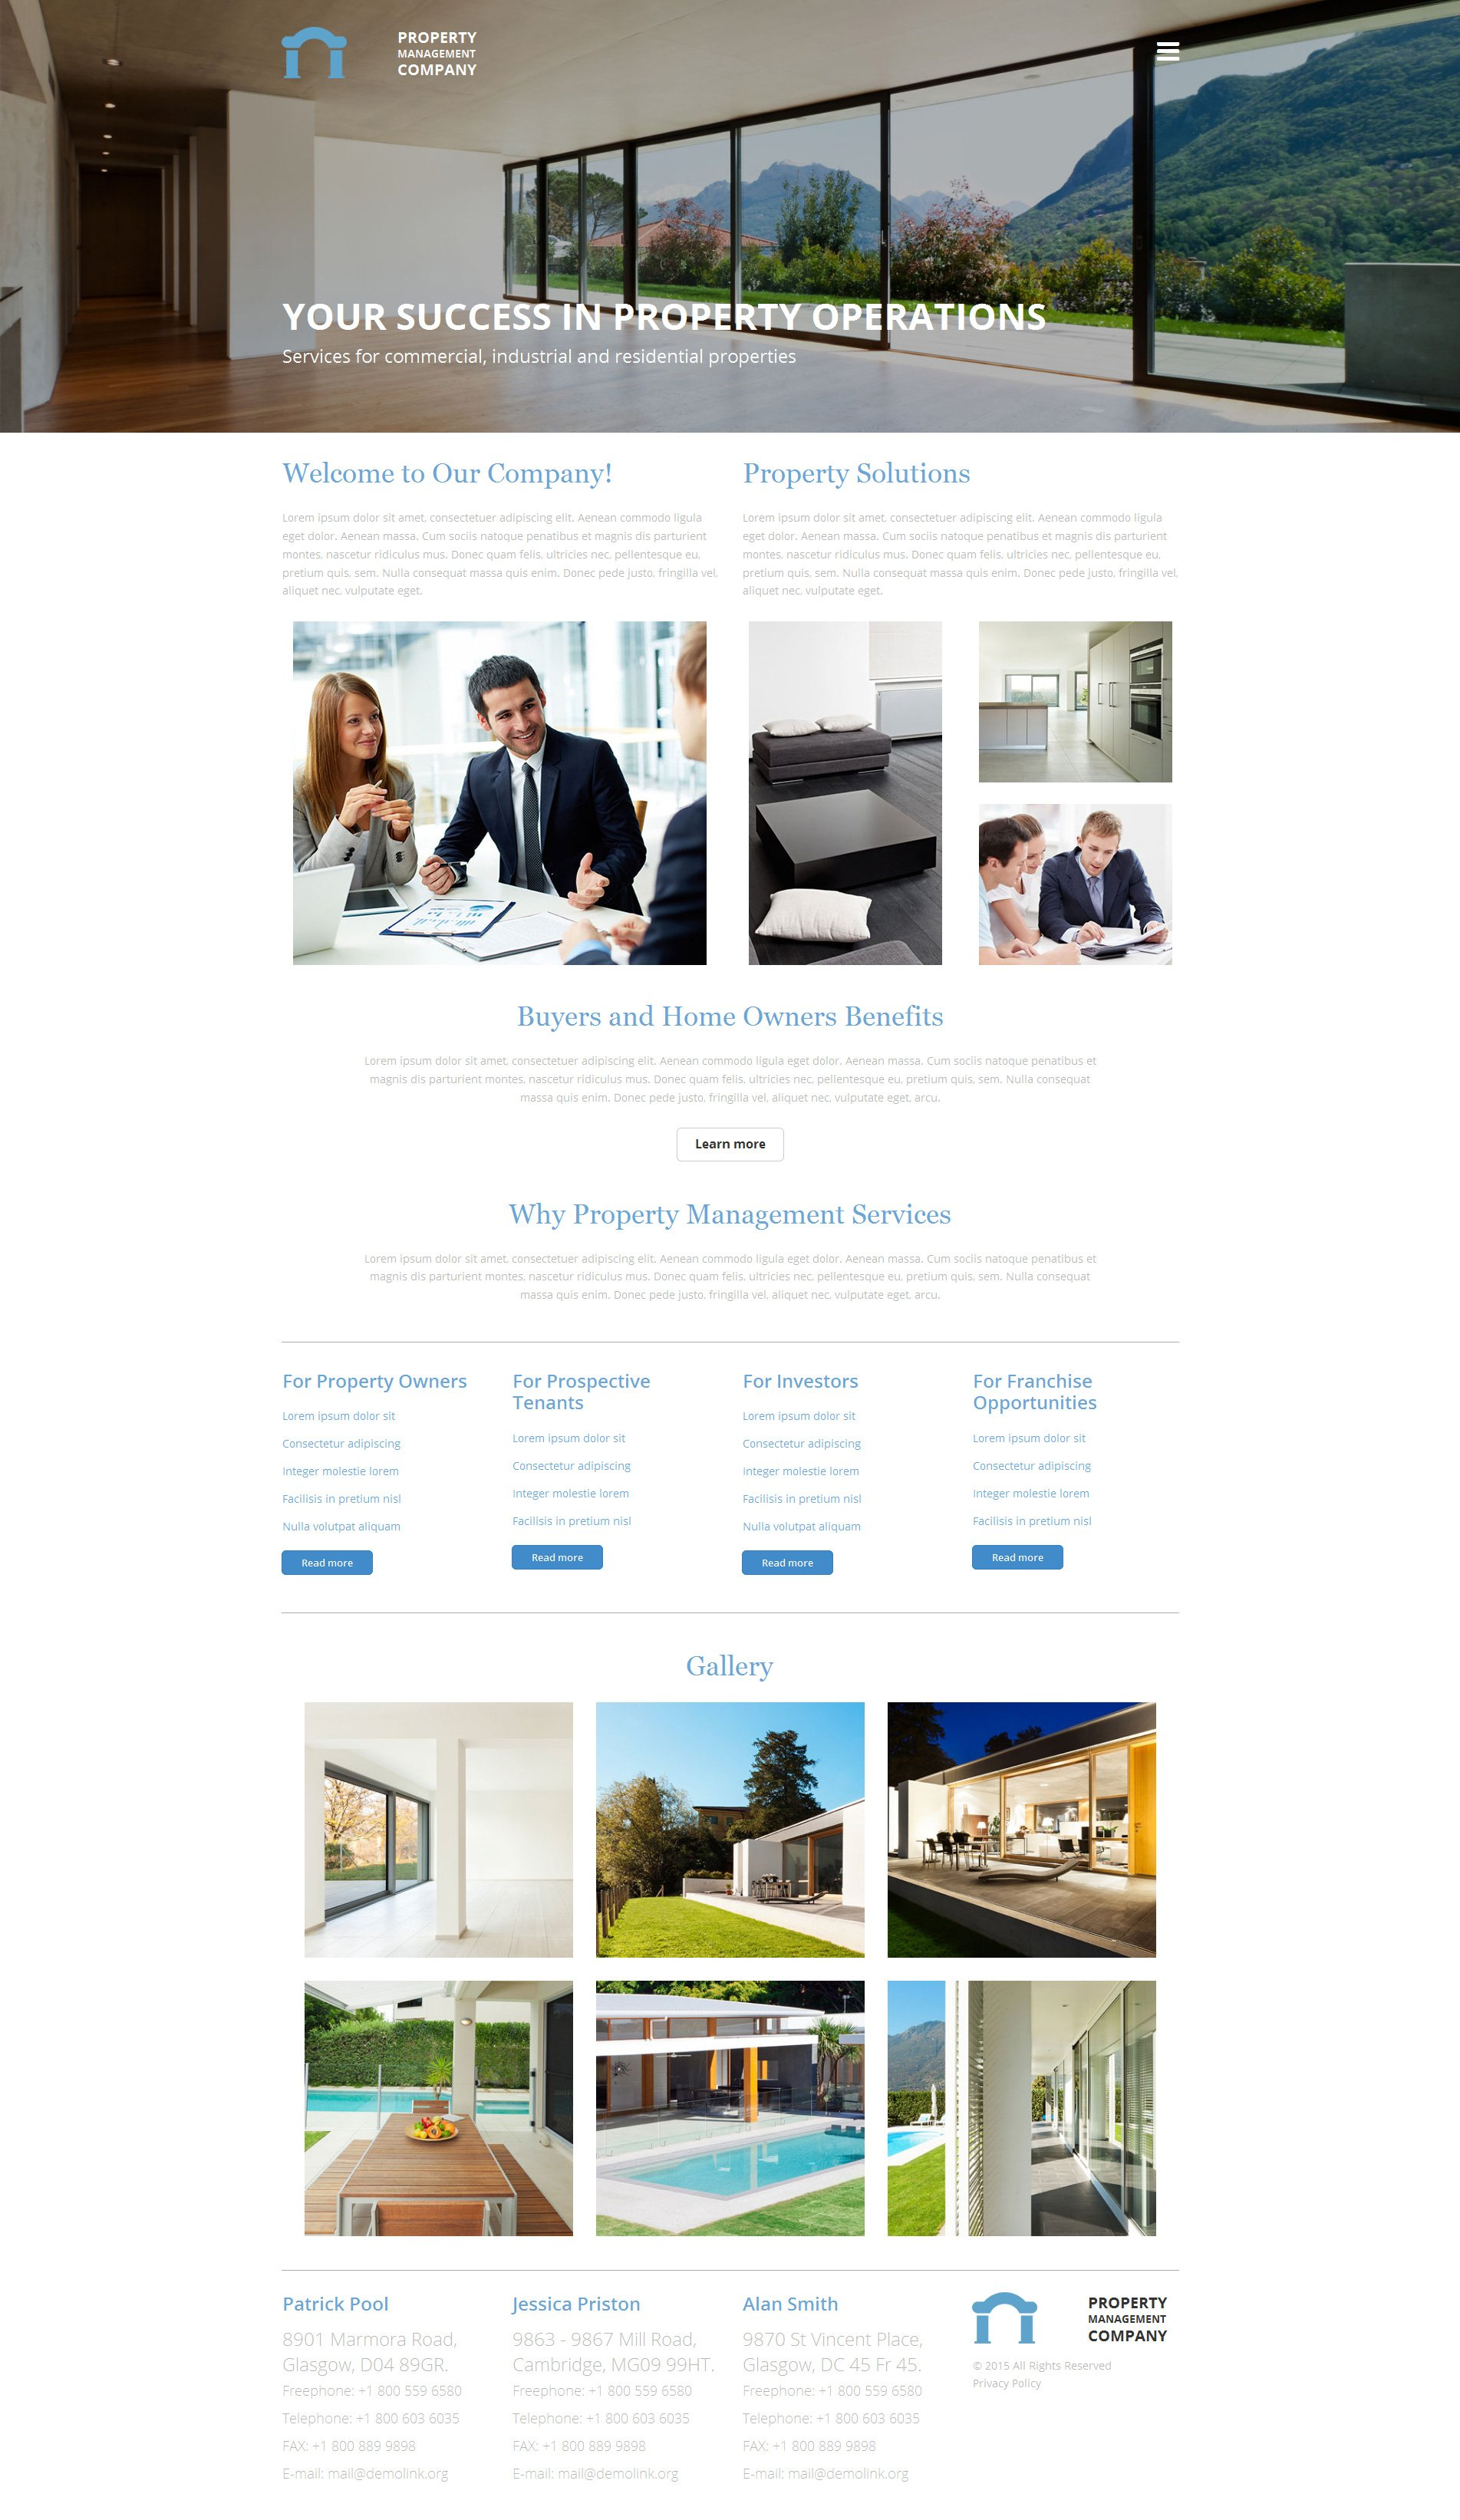 The Property Apartments Moto CMS 3 Templates Design 53737, one of the best Moto CMS 3 templates of its kind (real estate, most popular), also known as property apartments Moto CMS 3 template, rent Moto CMS 3 template, real estate agency Moto CMS 3 template, services Moto CMS 3 template, house Moto CMS 3 template, home Moto CMS 3 template, apartment Moto CMS 3 template, buildings Moto CMS 3 template, finance Moto CMS 3 template, loan Moto CMS 3 template, sales Moto CMS 3 template, rentals Moto CMS 3 template, management Moto CMS 3 template, search Moto CMS 3 template, team Moto CMS 3 template, money Moto CMS 3 template, foreclosure Moto CMS 3 template, estimator Moto CMS 3 template, investment Moto CMS 3 template, development Moto CMS 3 template, constructions Moto CMS 3 template, architecture Moto CMS 3 template, engineering Moto CMS 3 template, apartment Moto CMS 3 template, sale Moto CMS 3 template, rent Moto CMS 3 template, architecture Moto CMS 3 template, broker Moto CMS 3 template, lots and related with property apartments, rent, real estate agency, services, house, home, apartment, buildings, finance, loan, sales, rentals, management, search, team, money, foreclosure, estimator, investment, development, constructions, architecture, engineering, apartment, sale, rent, architecture, broker, lots, etc.